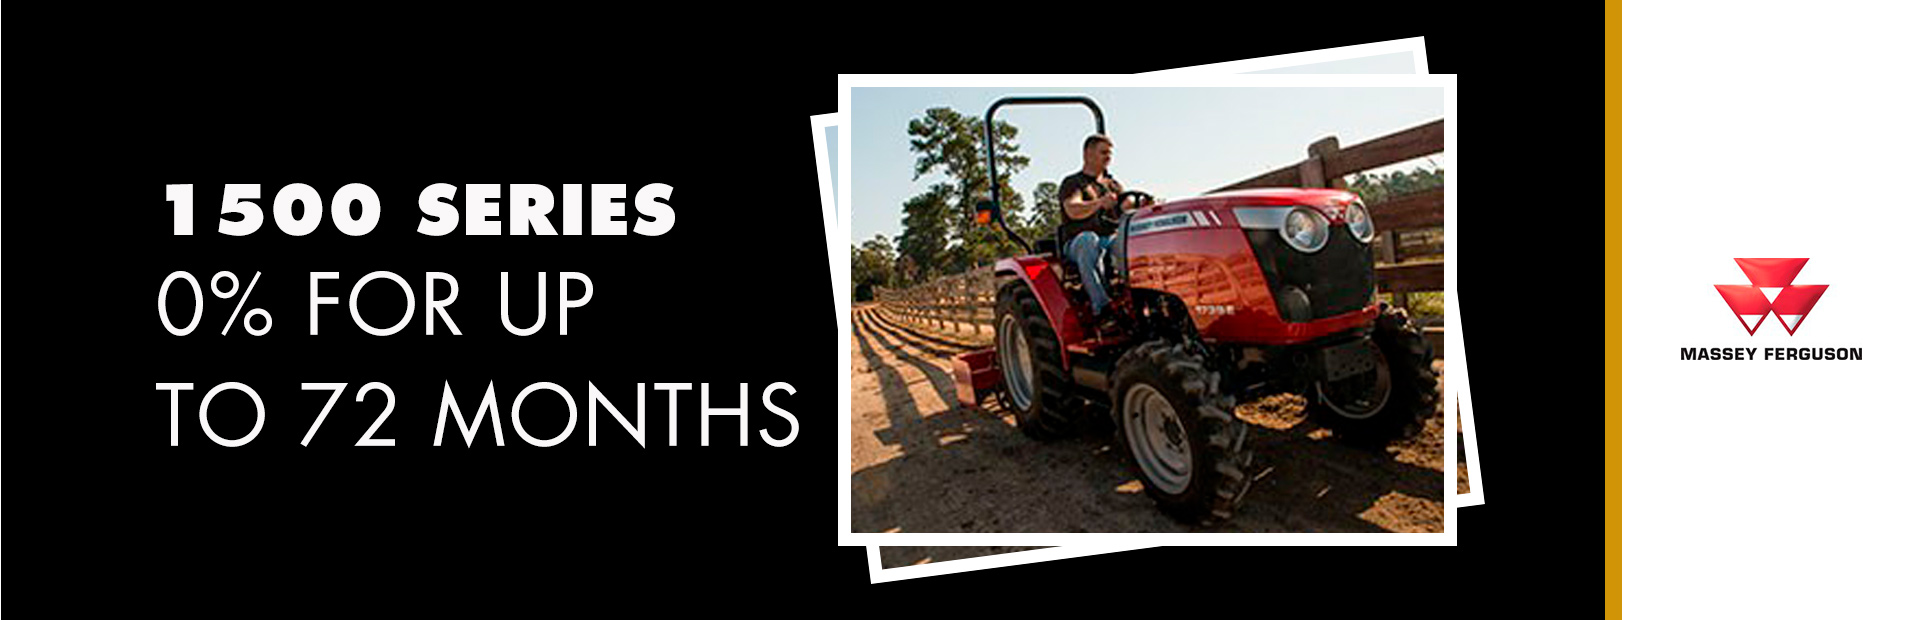 Massey Ferguson: 1500 Series Compact Tract - 0% for up to 72 Months